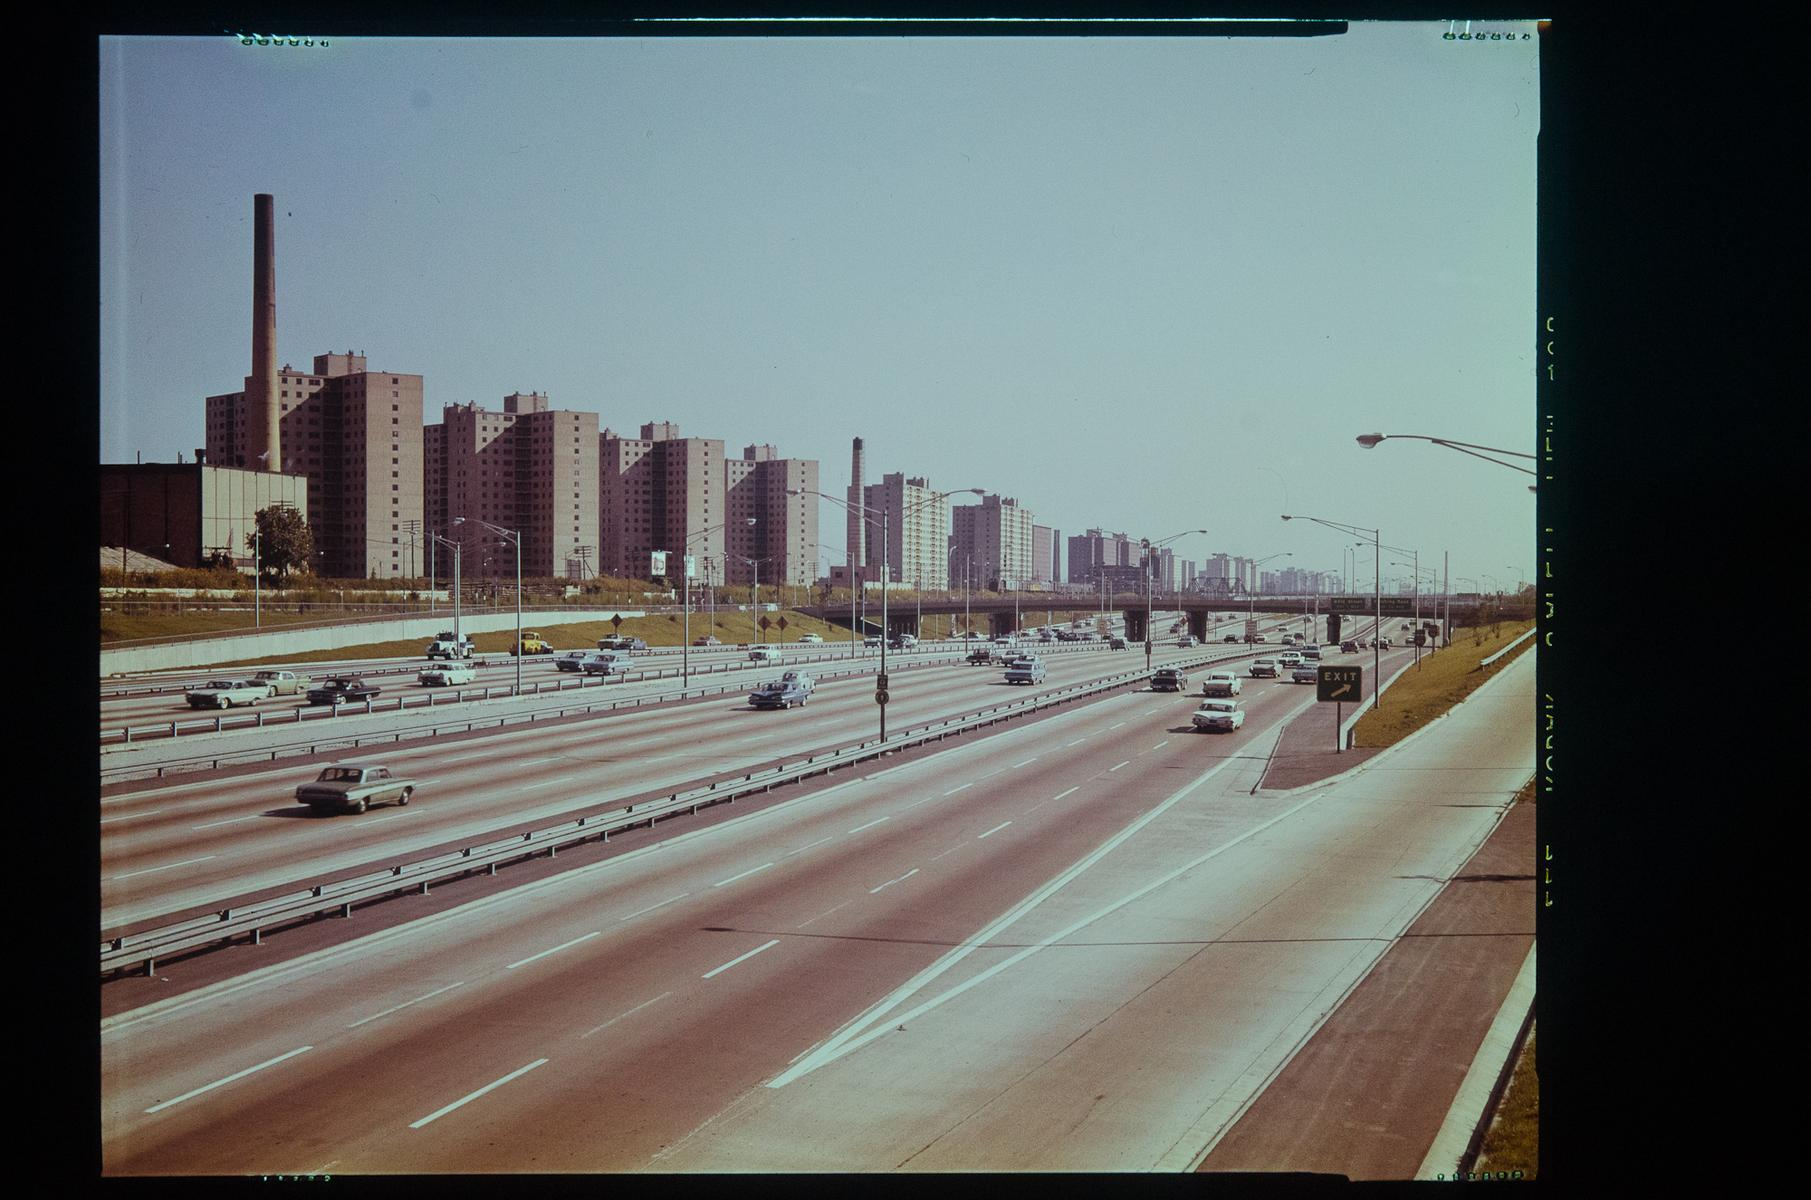 Dan Ryan Expressway, looking South from 31st Street; high-rise housing development in distance (on State Sreet)